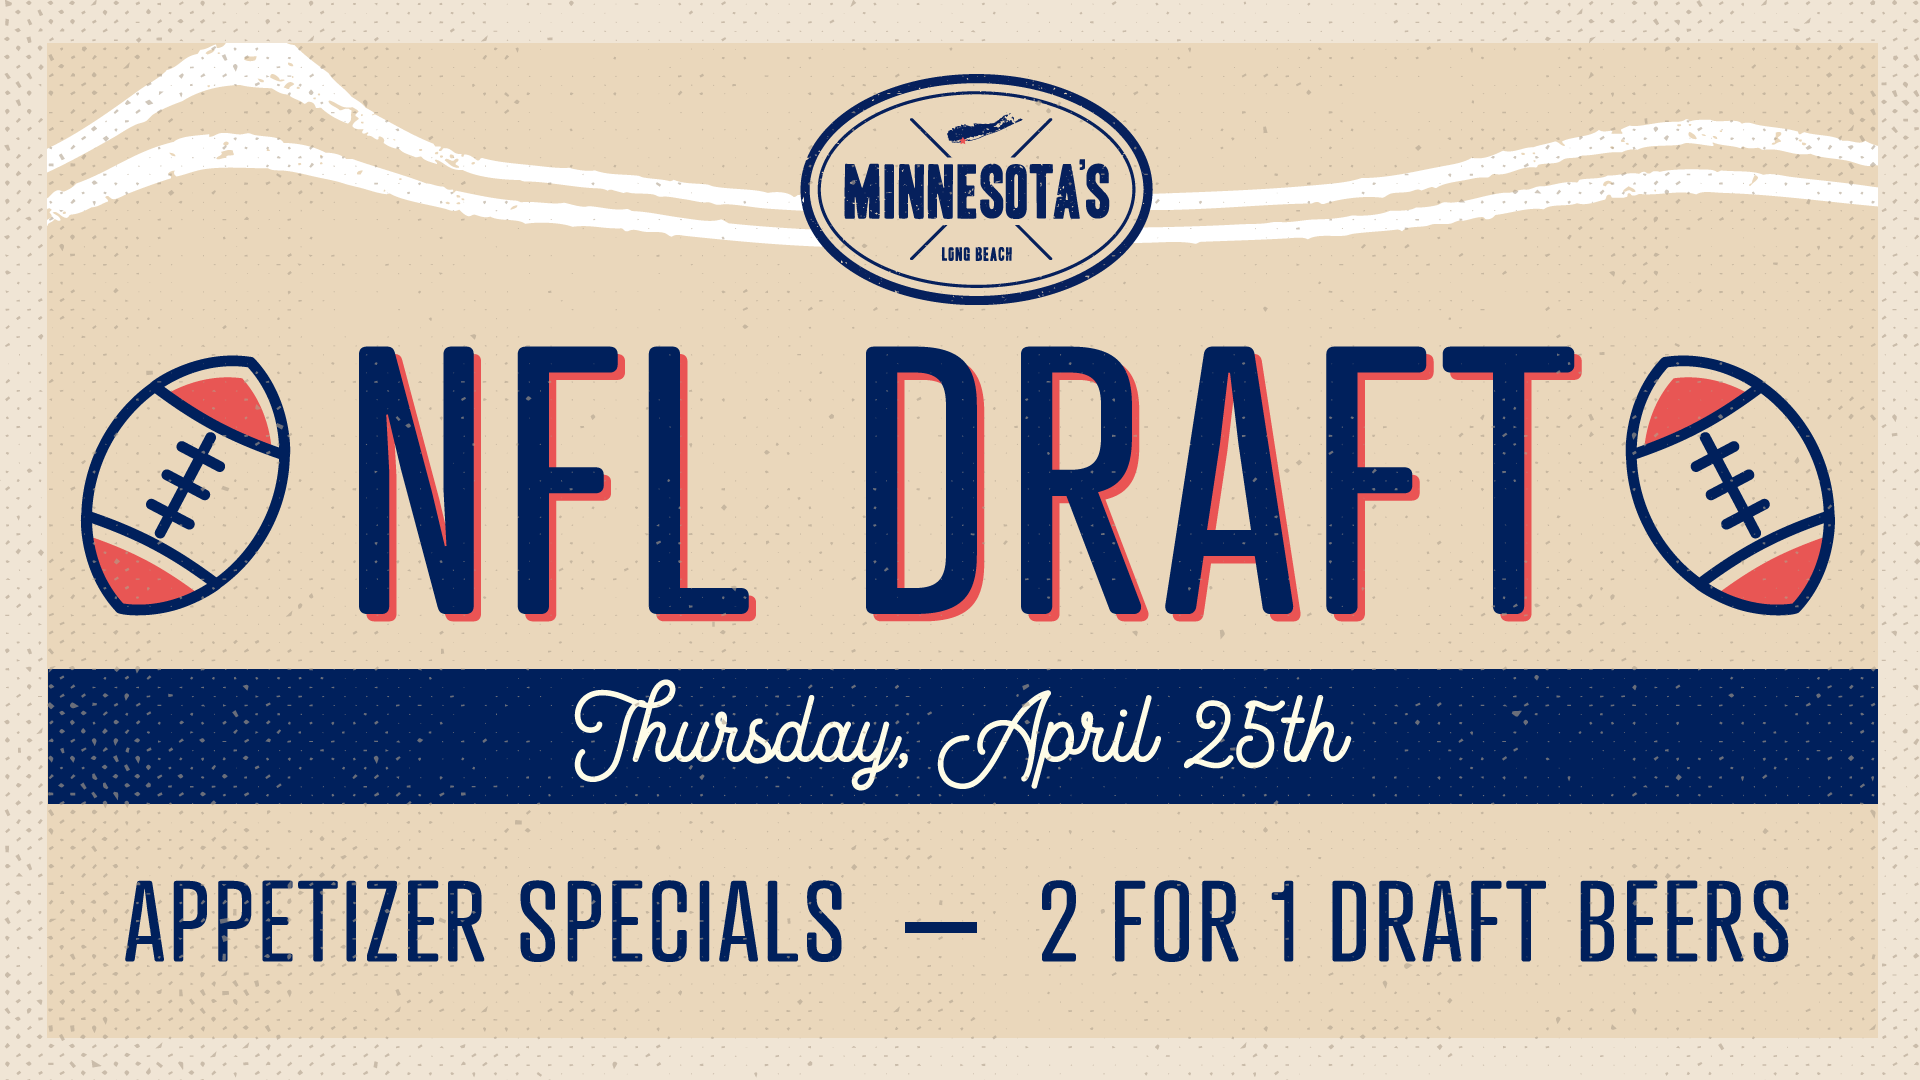 Catch the first NFL Draft here at Minnesota's April 275th at 7:30 PM